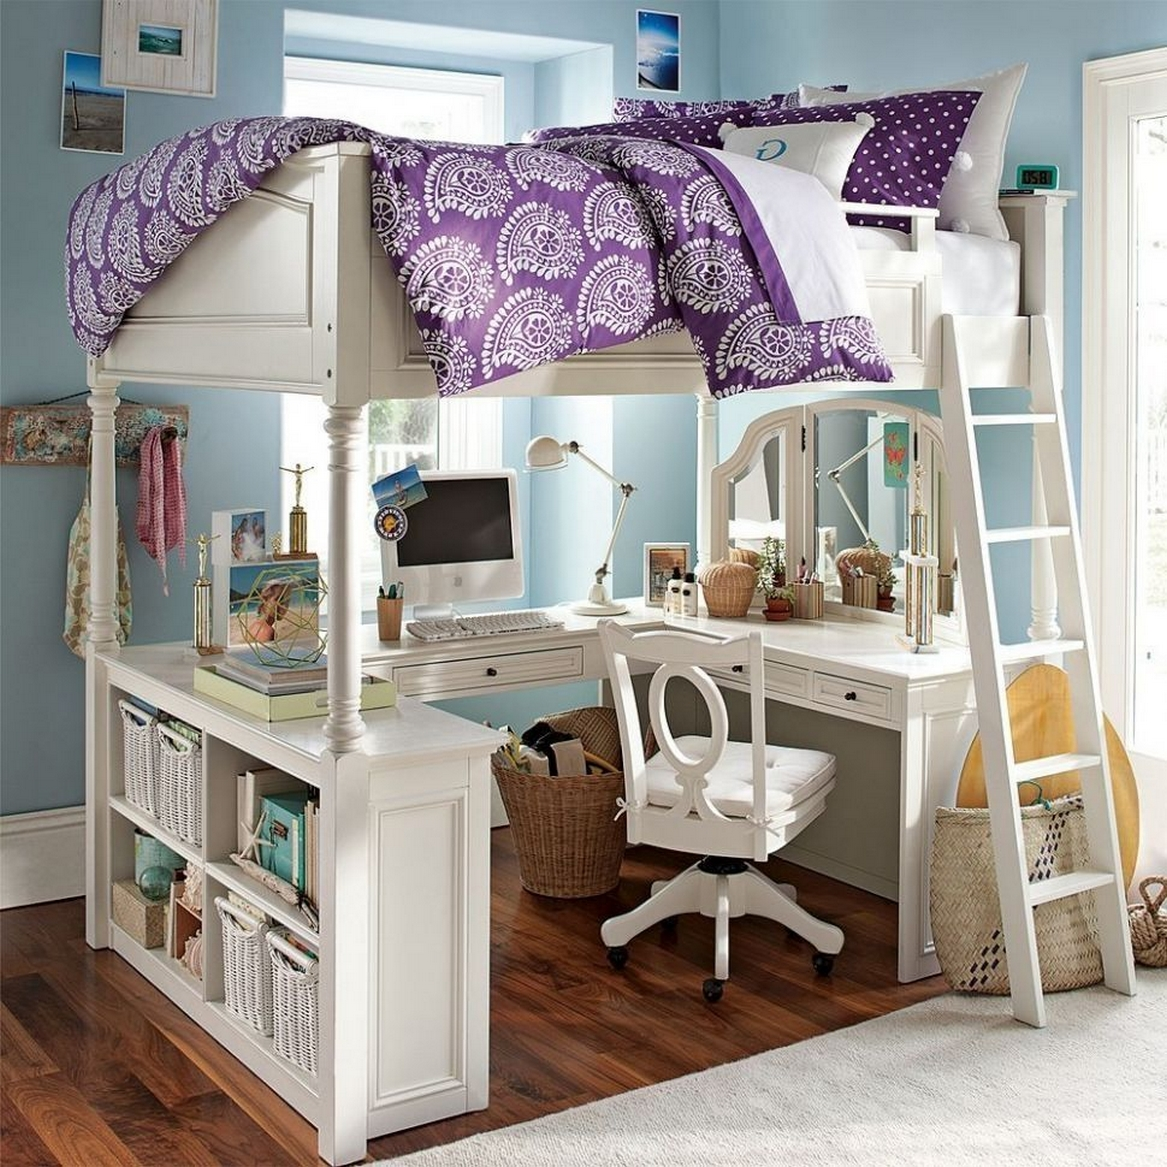 30+ Bunk Beds Design Ideas With Desk Areas Help To Make Compact Bedrooms Bigger 23